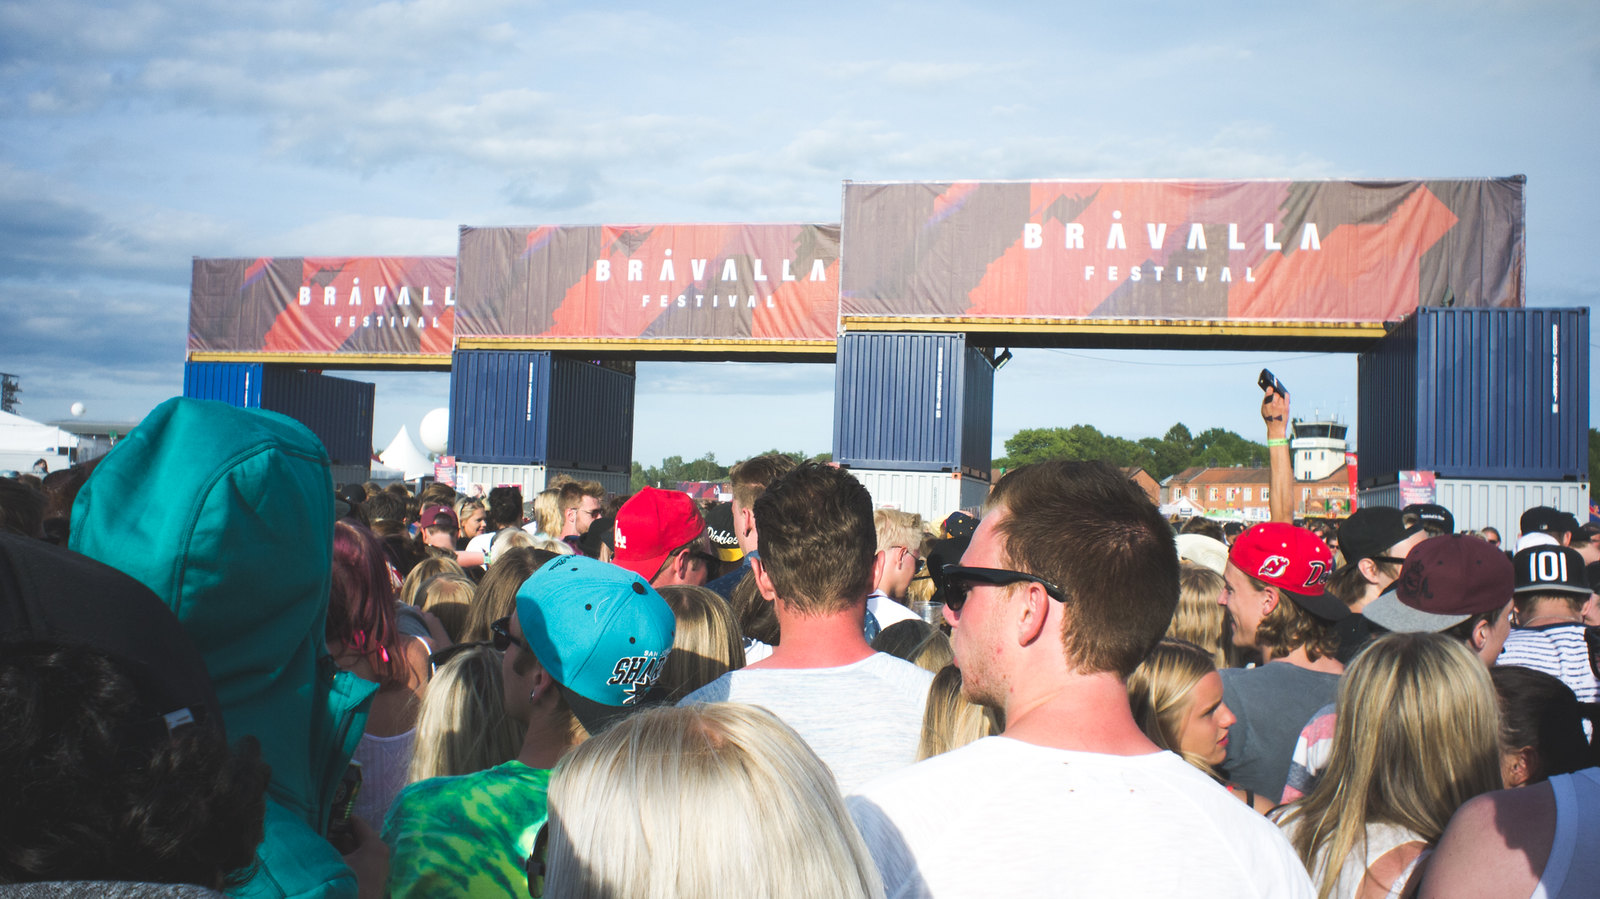 The Bråvalla Festival 2014